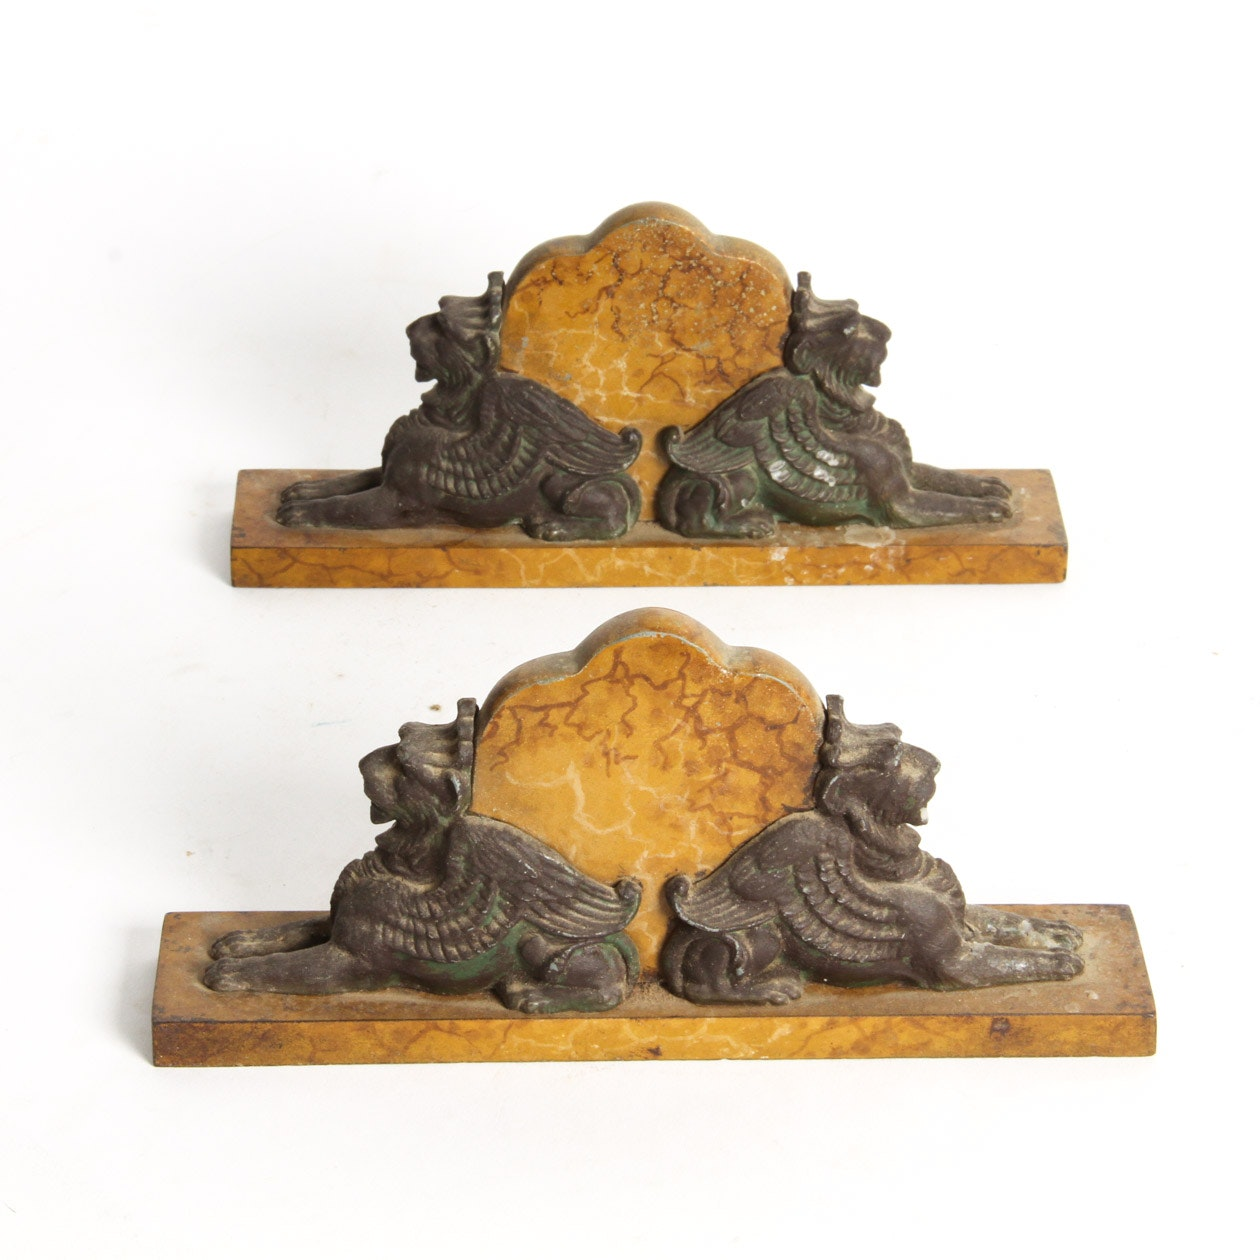 Pair of Vintage Cast Iron and Stone Griffin Door Stoppers ...  sc 1 st  Everything But The House & Pair of Vintage Cast Iron and Stone Griffin Door Stoppers : EBTH pezcame.com